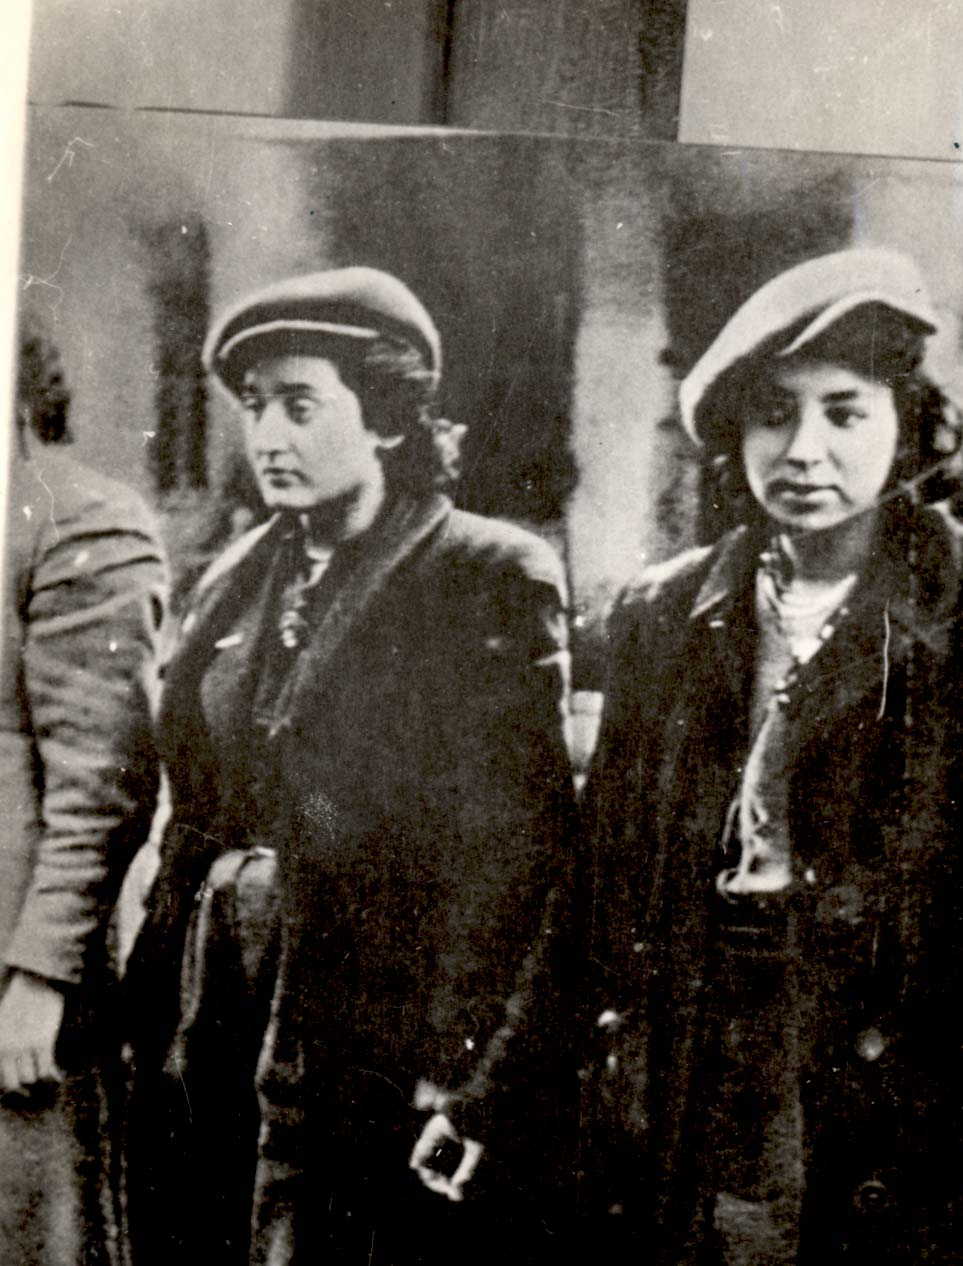 Female fighters in the Warsaw Ghetto